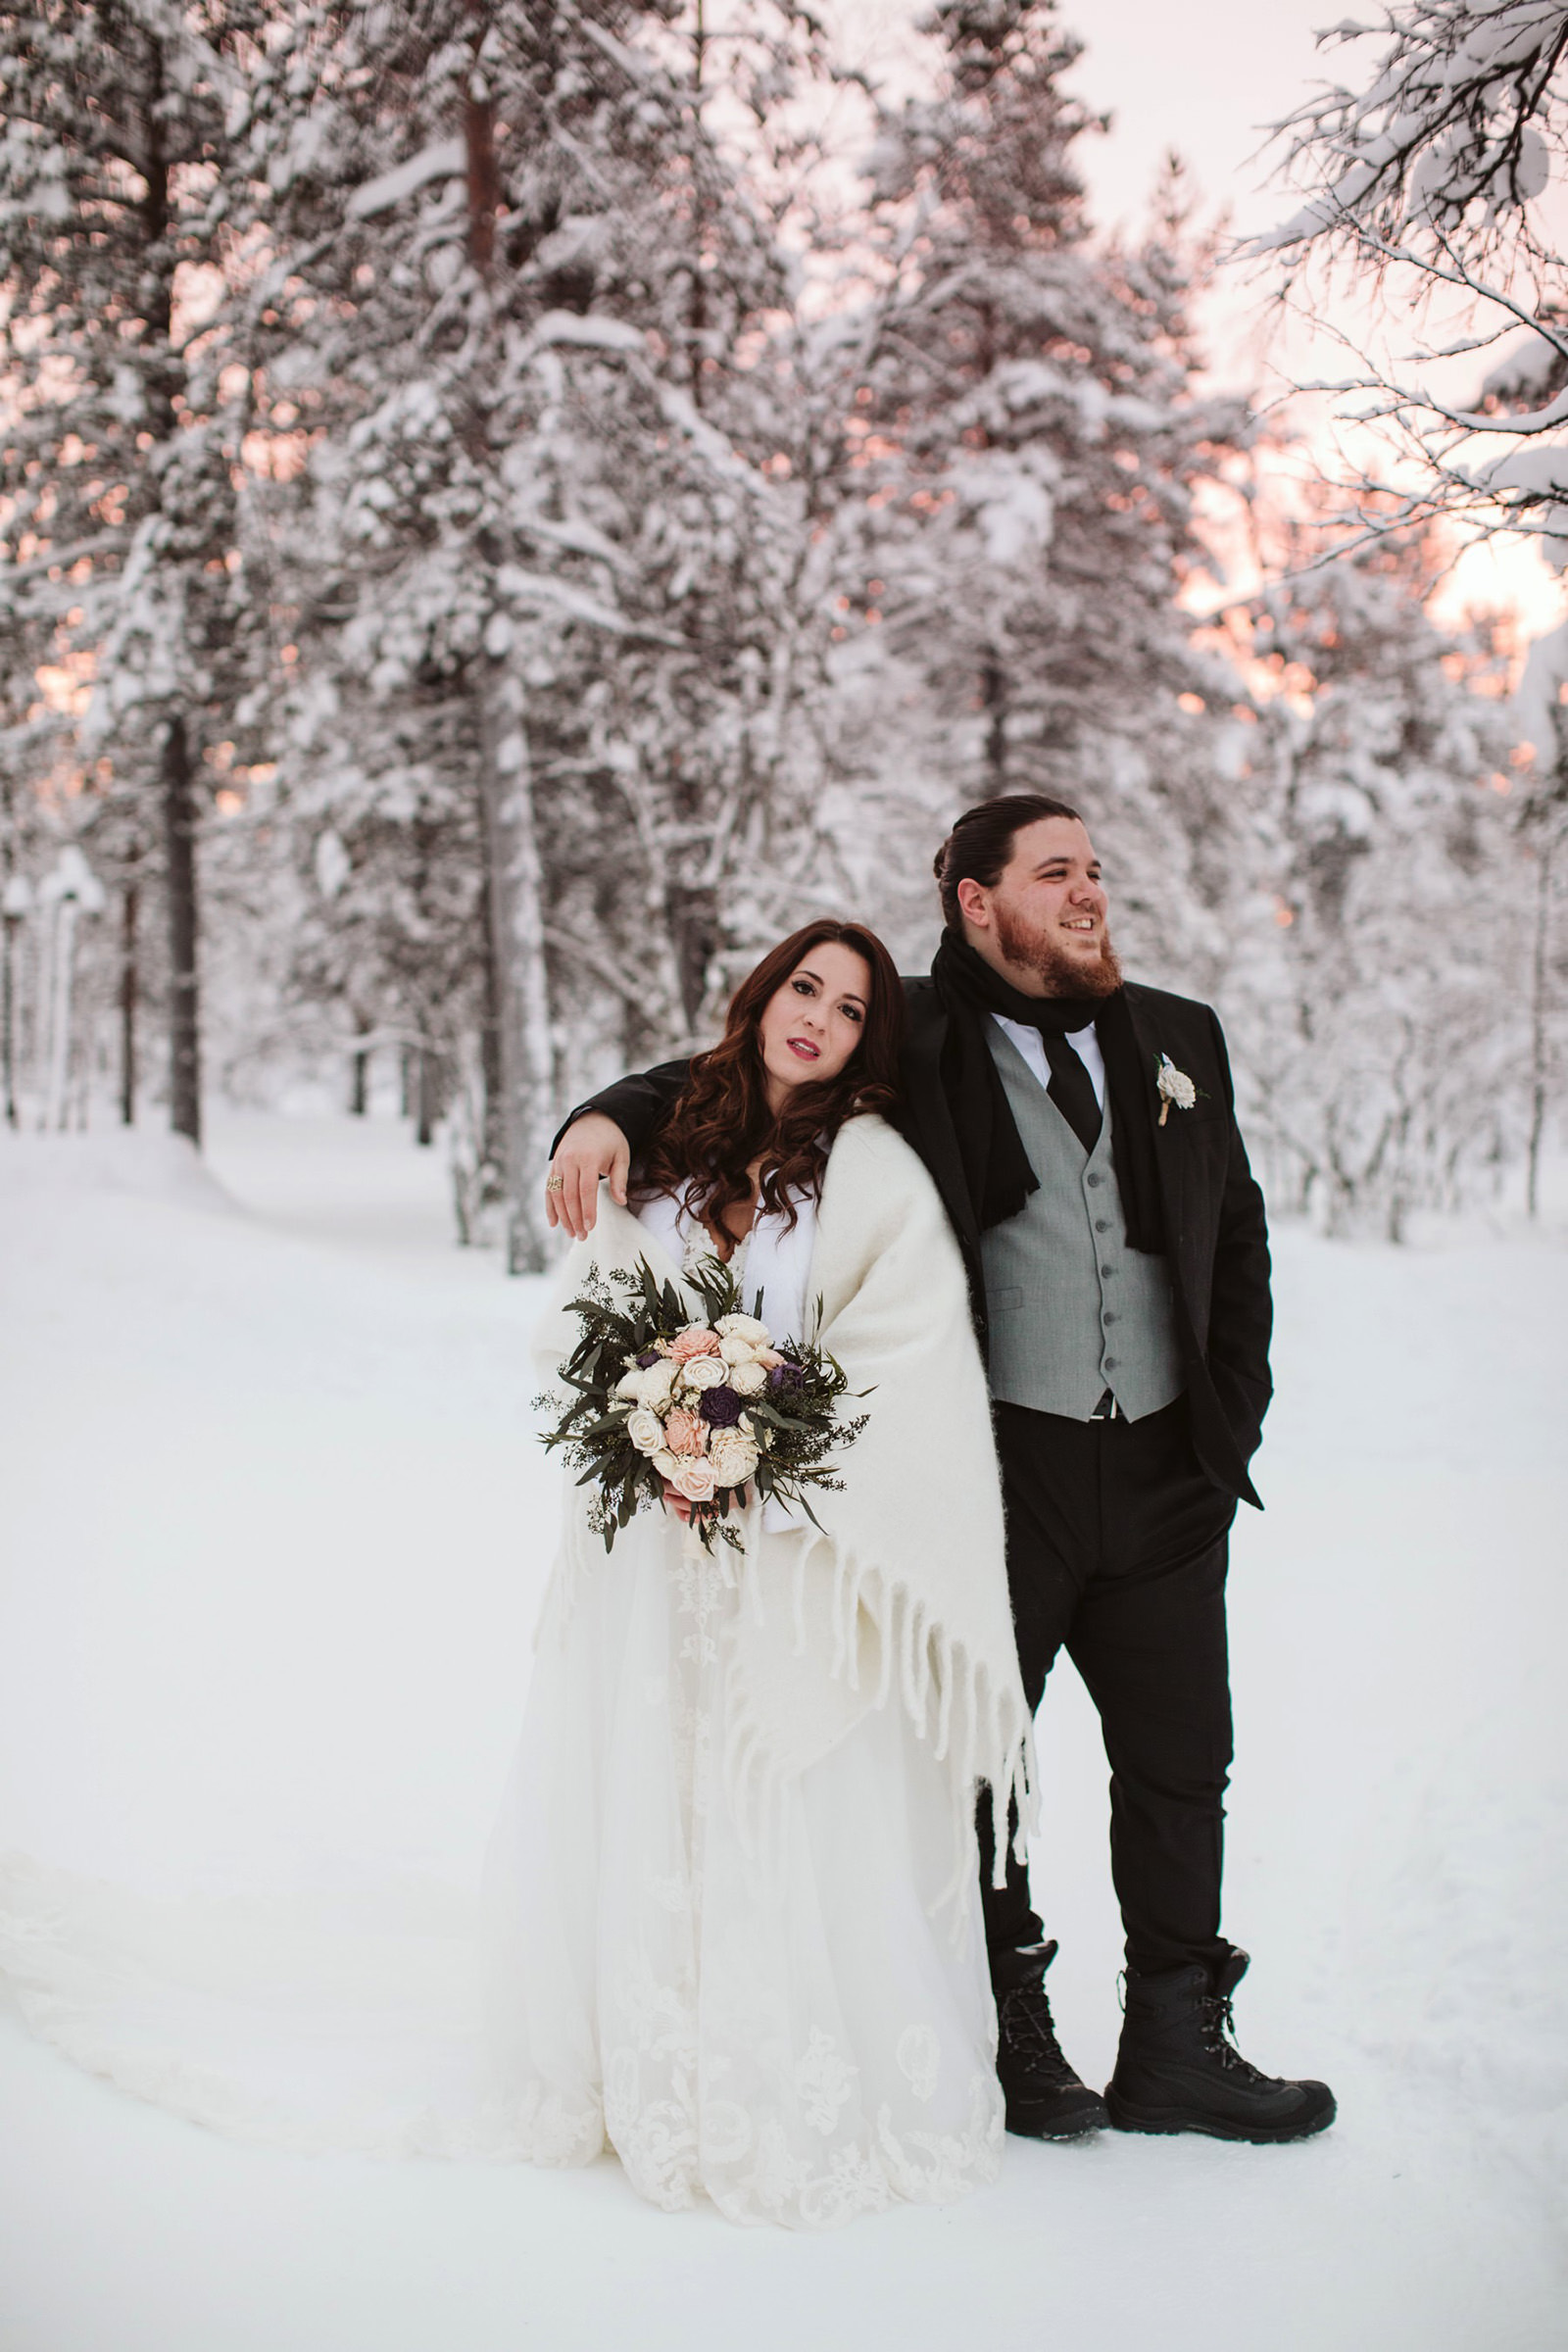 Lapland wedding portraits